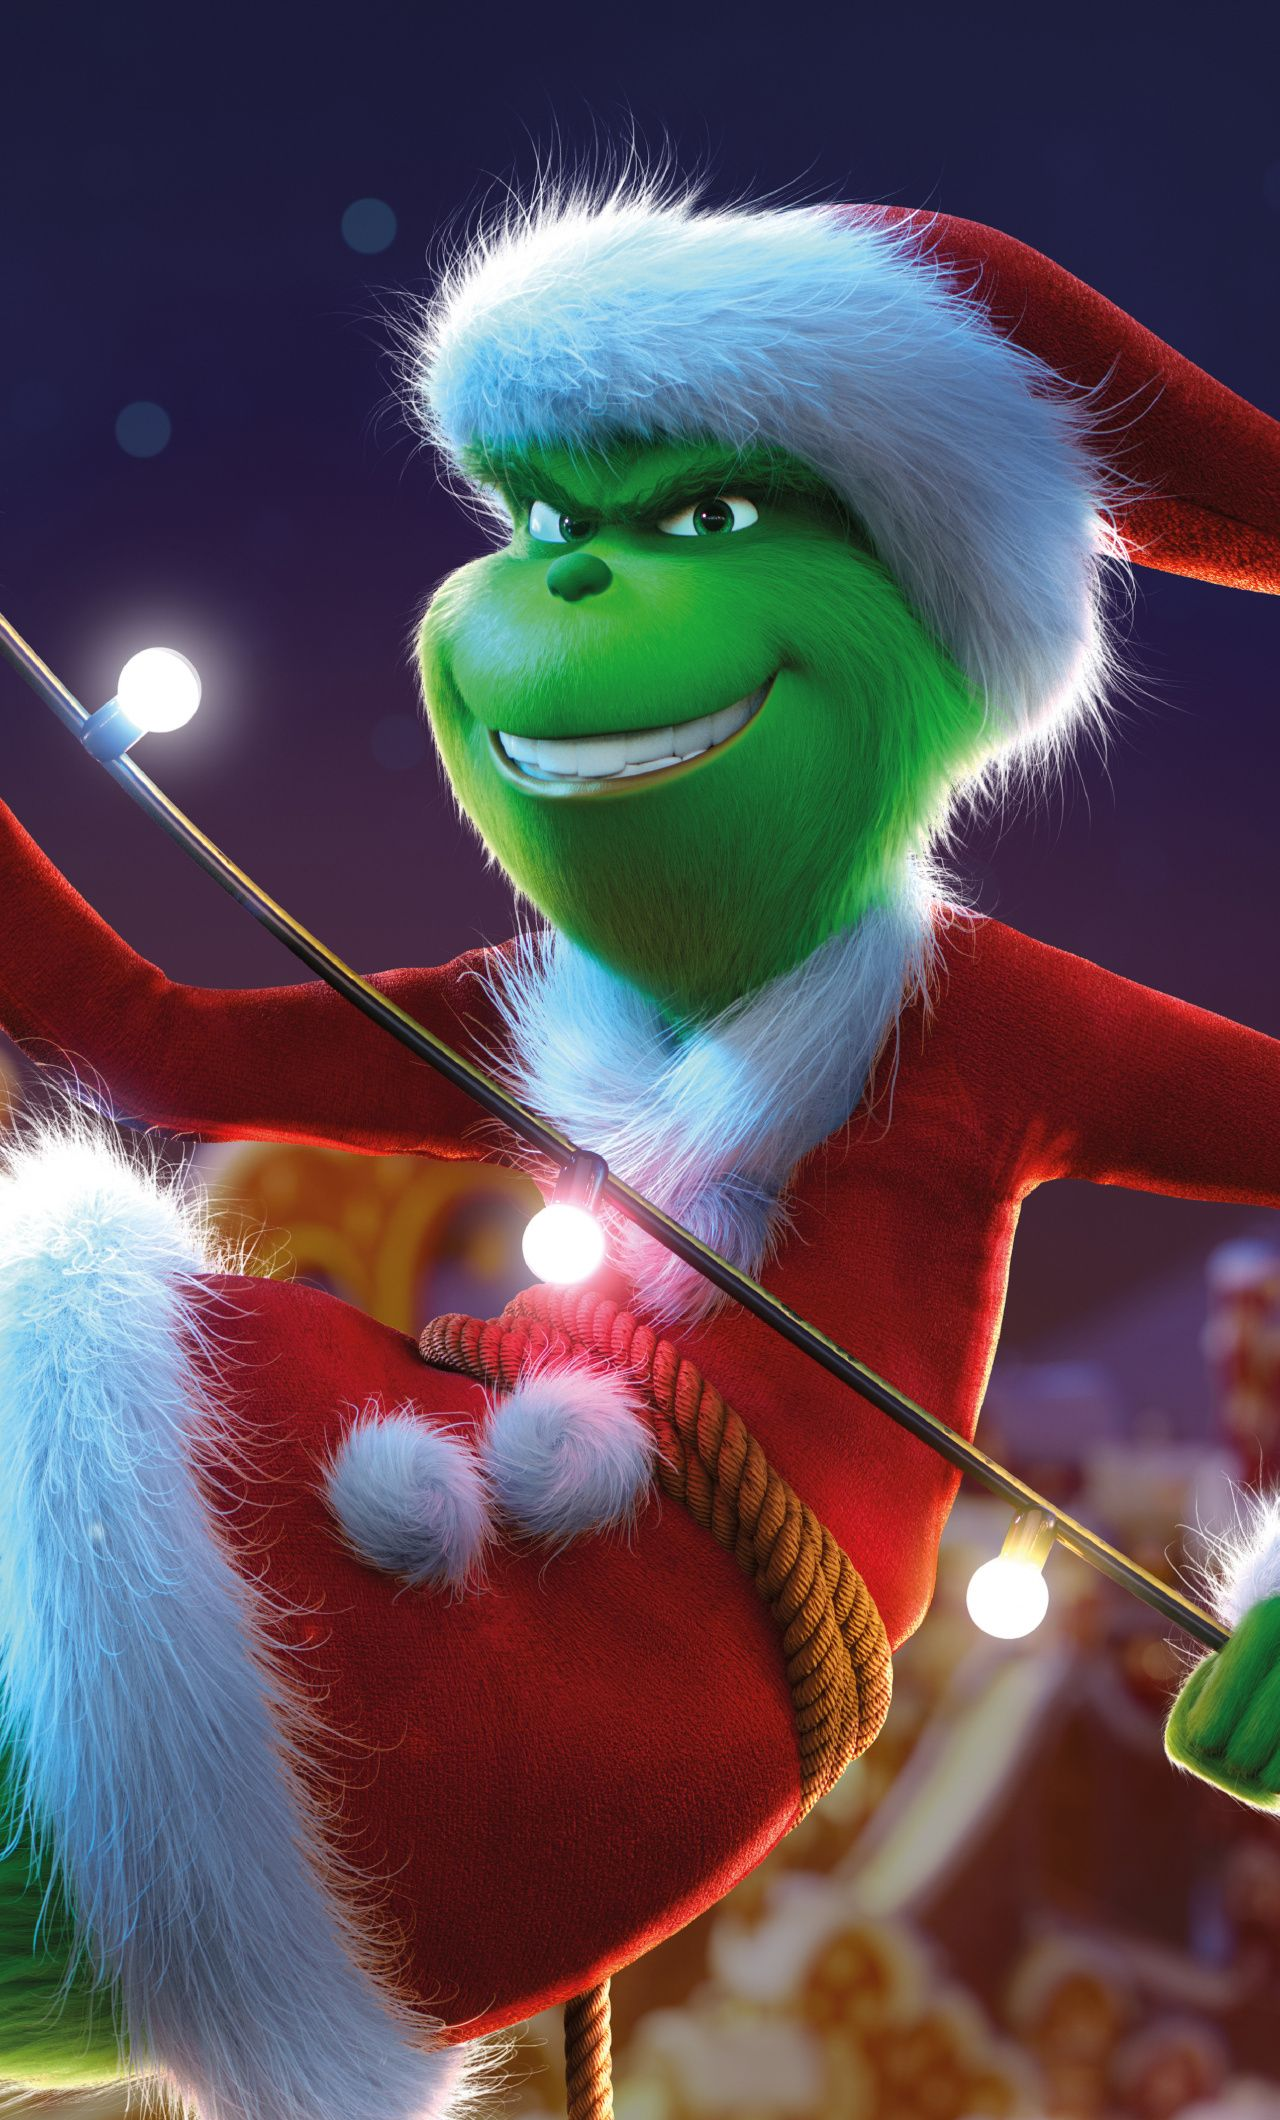 The Grinch, movie, Christmas, Animation movie, 2018